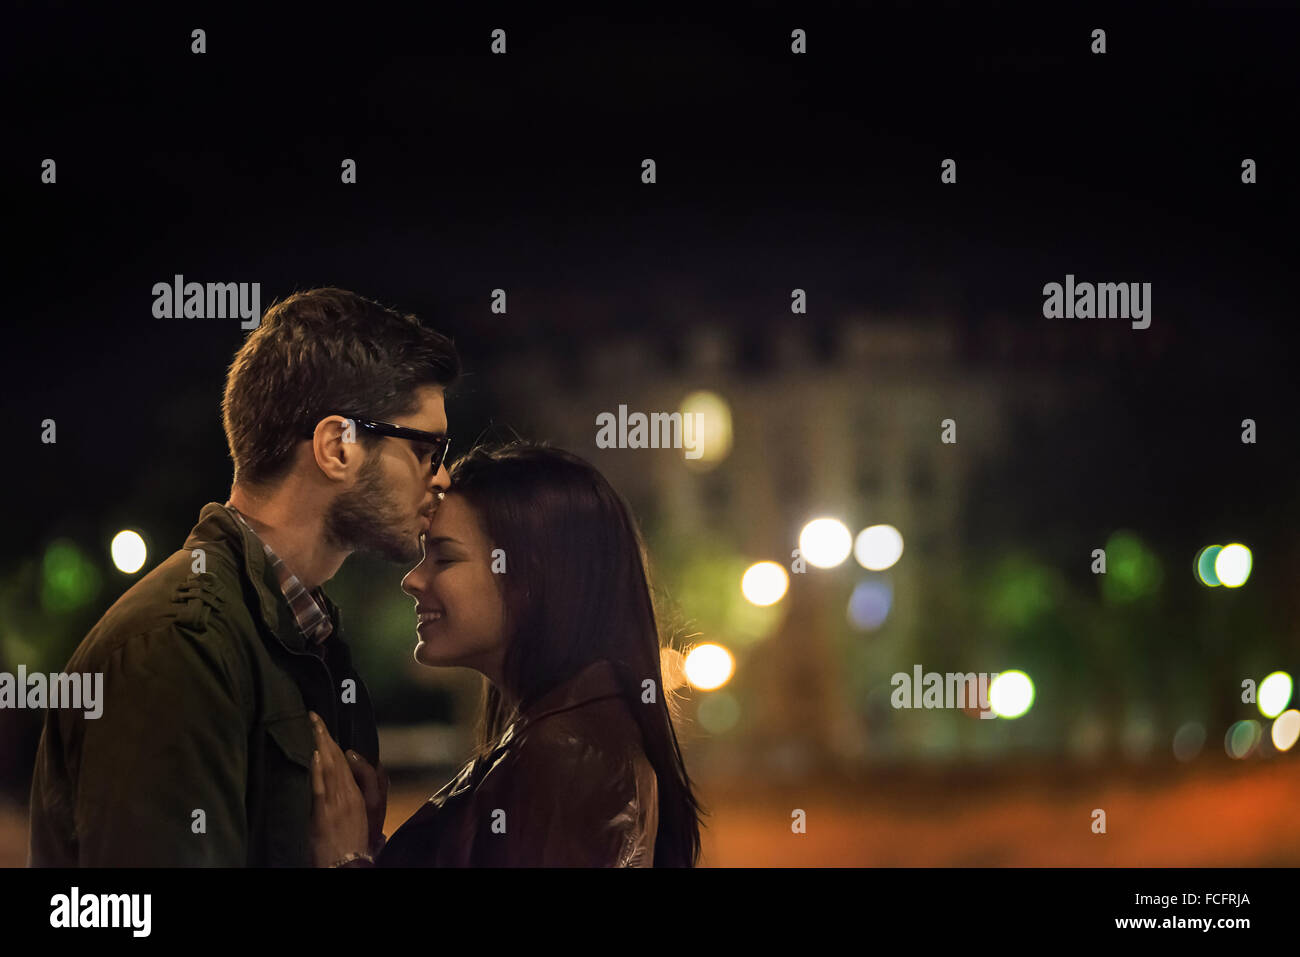 A couple kissing in a city at night. - Stock Image